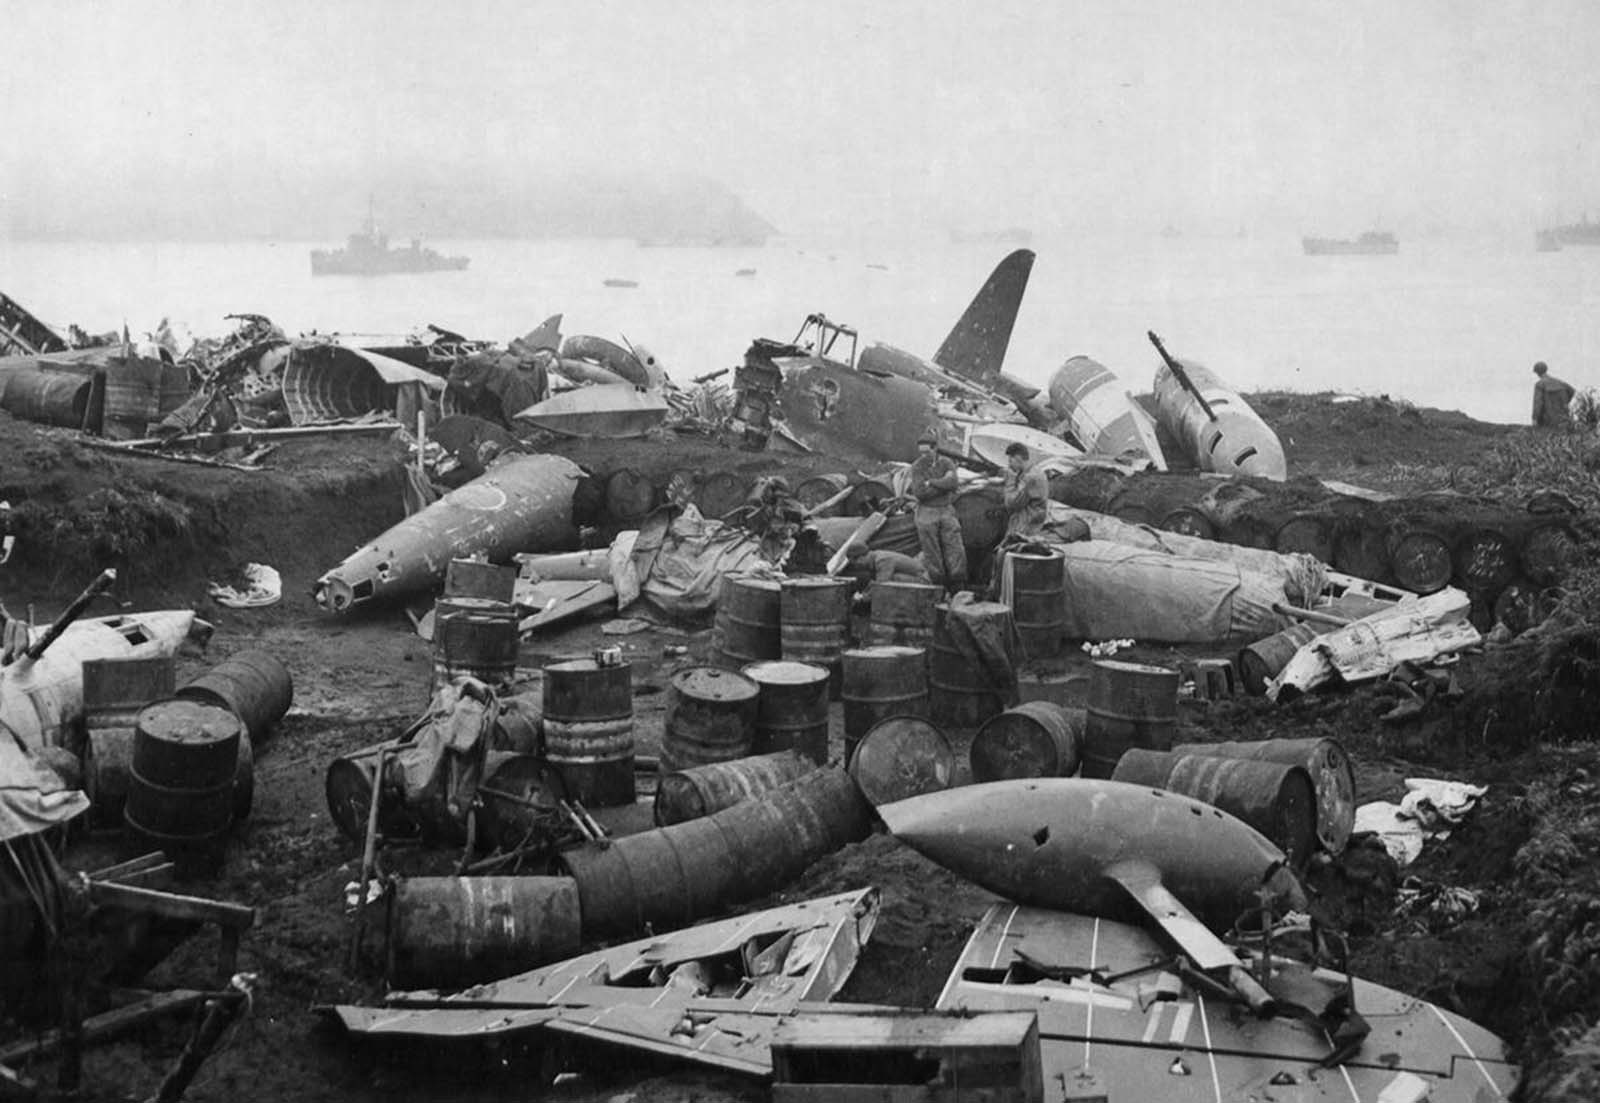 Wrecked Japanese planes, oil and gas drums are a mass of rubble on Kiska, Aleutian Islands, on August 19, 1943, as a result of Allied bombings.